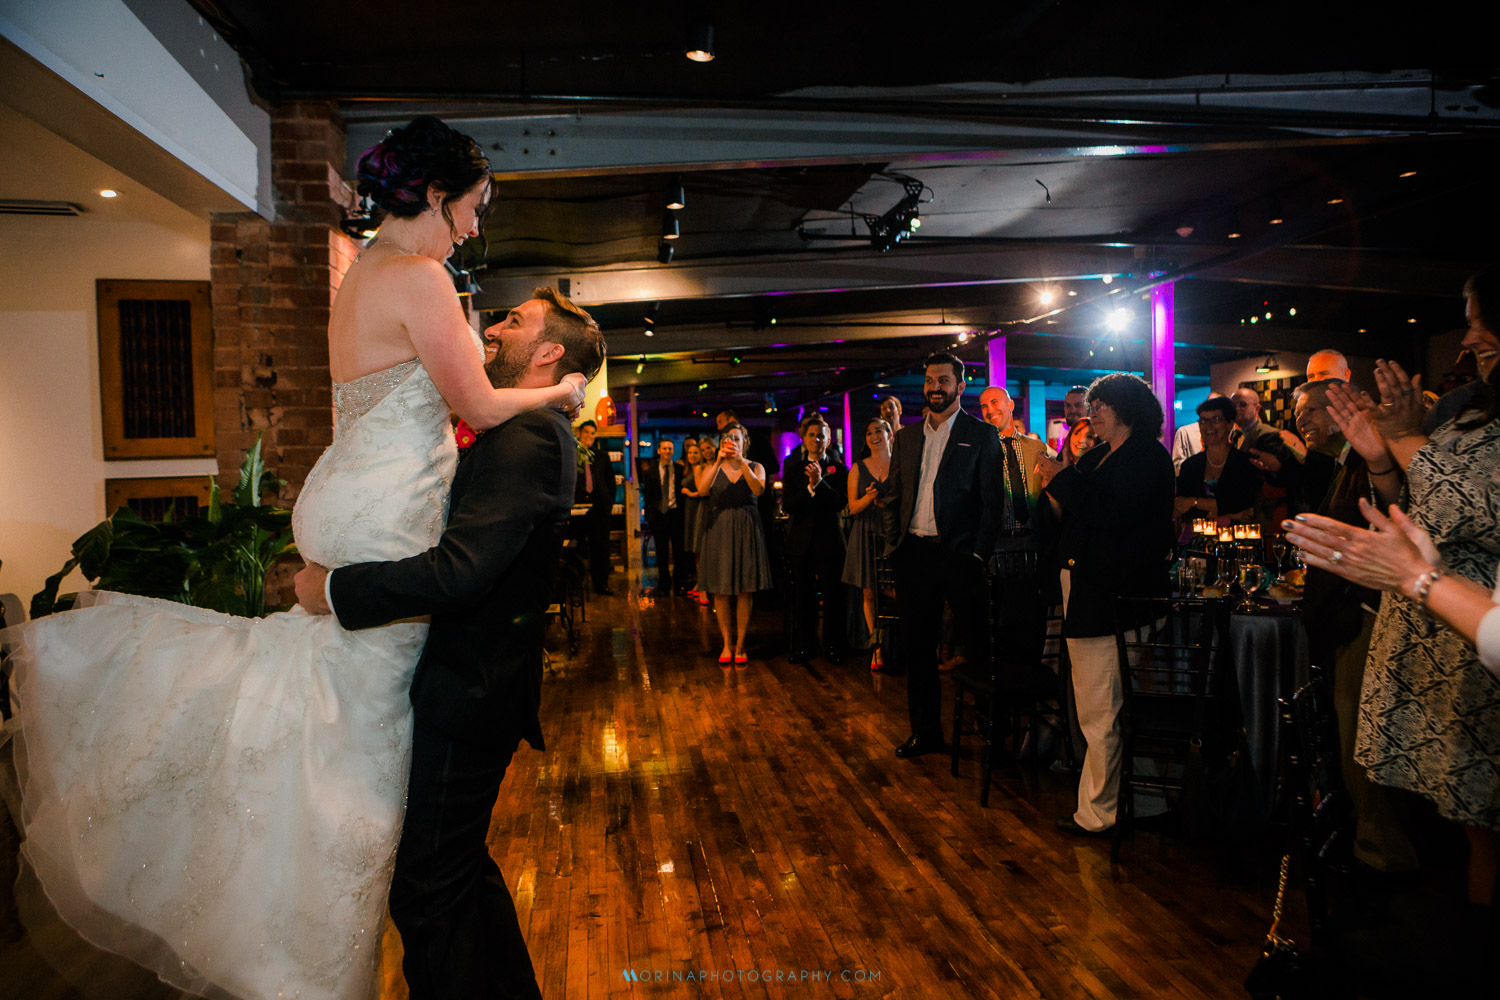 Jill & Rhett Wedding at Artesano Iron Works, Manayunk Philadelphia75.jpg